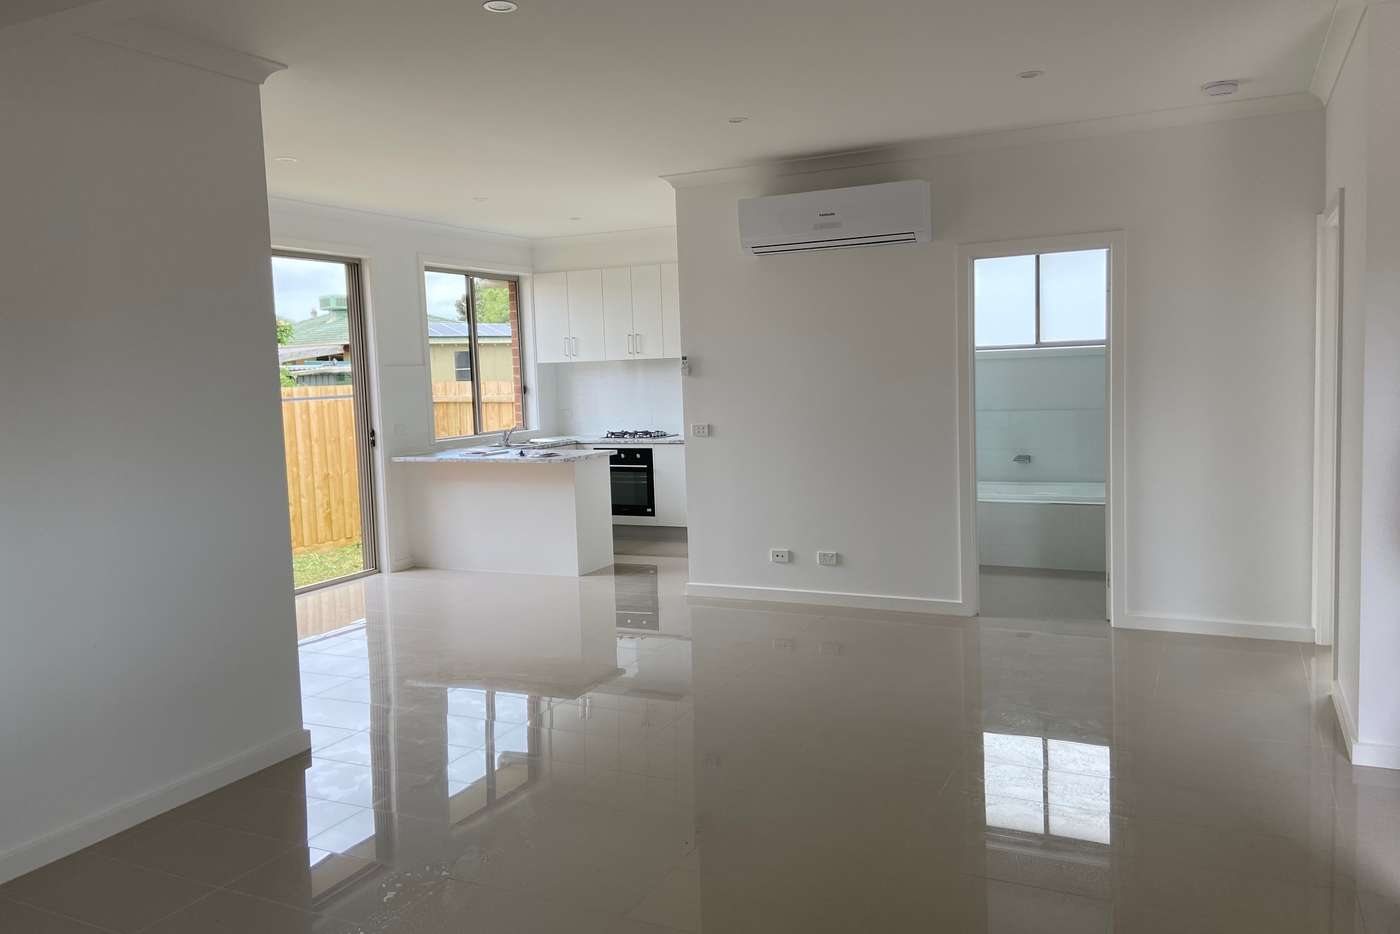 Main view of Homely house listing, 2/19 Jennings Street, Laverton VIC 3028